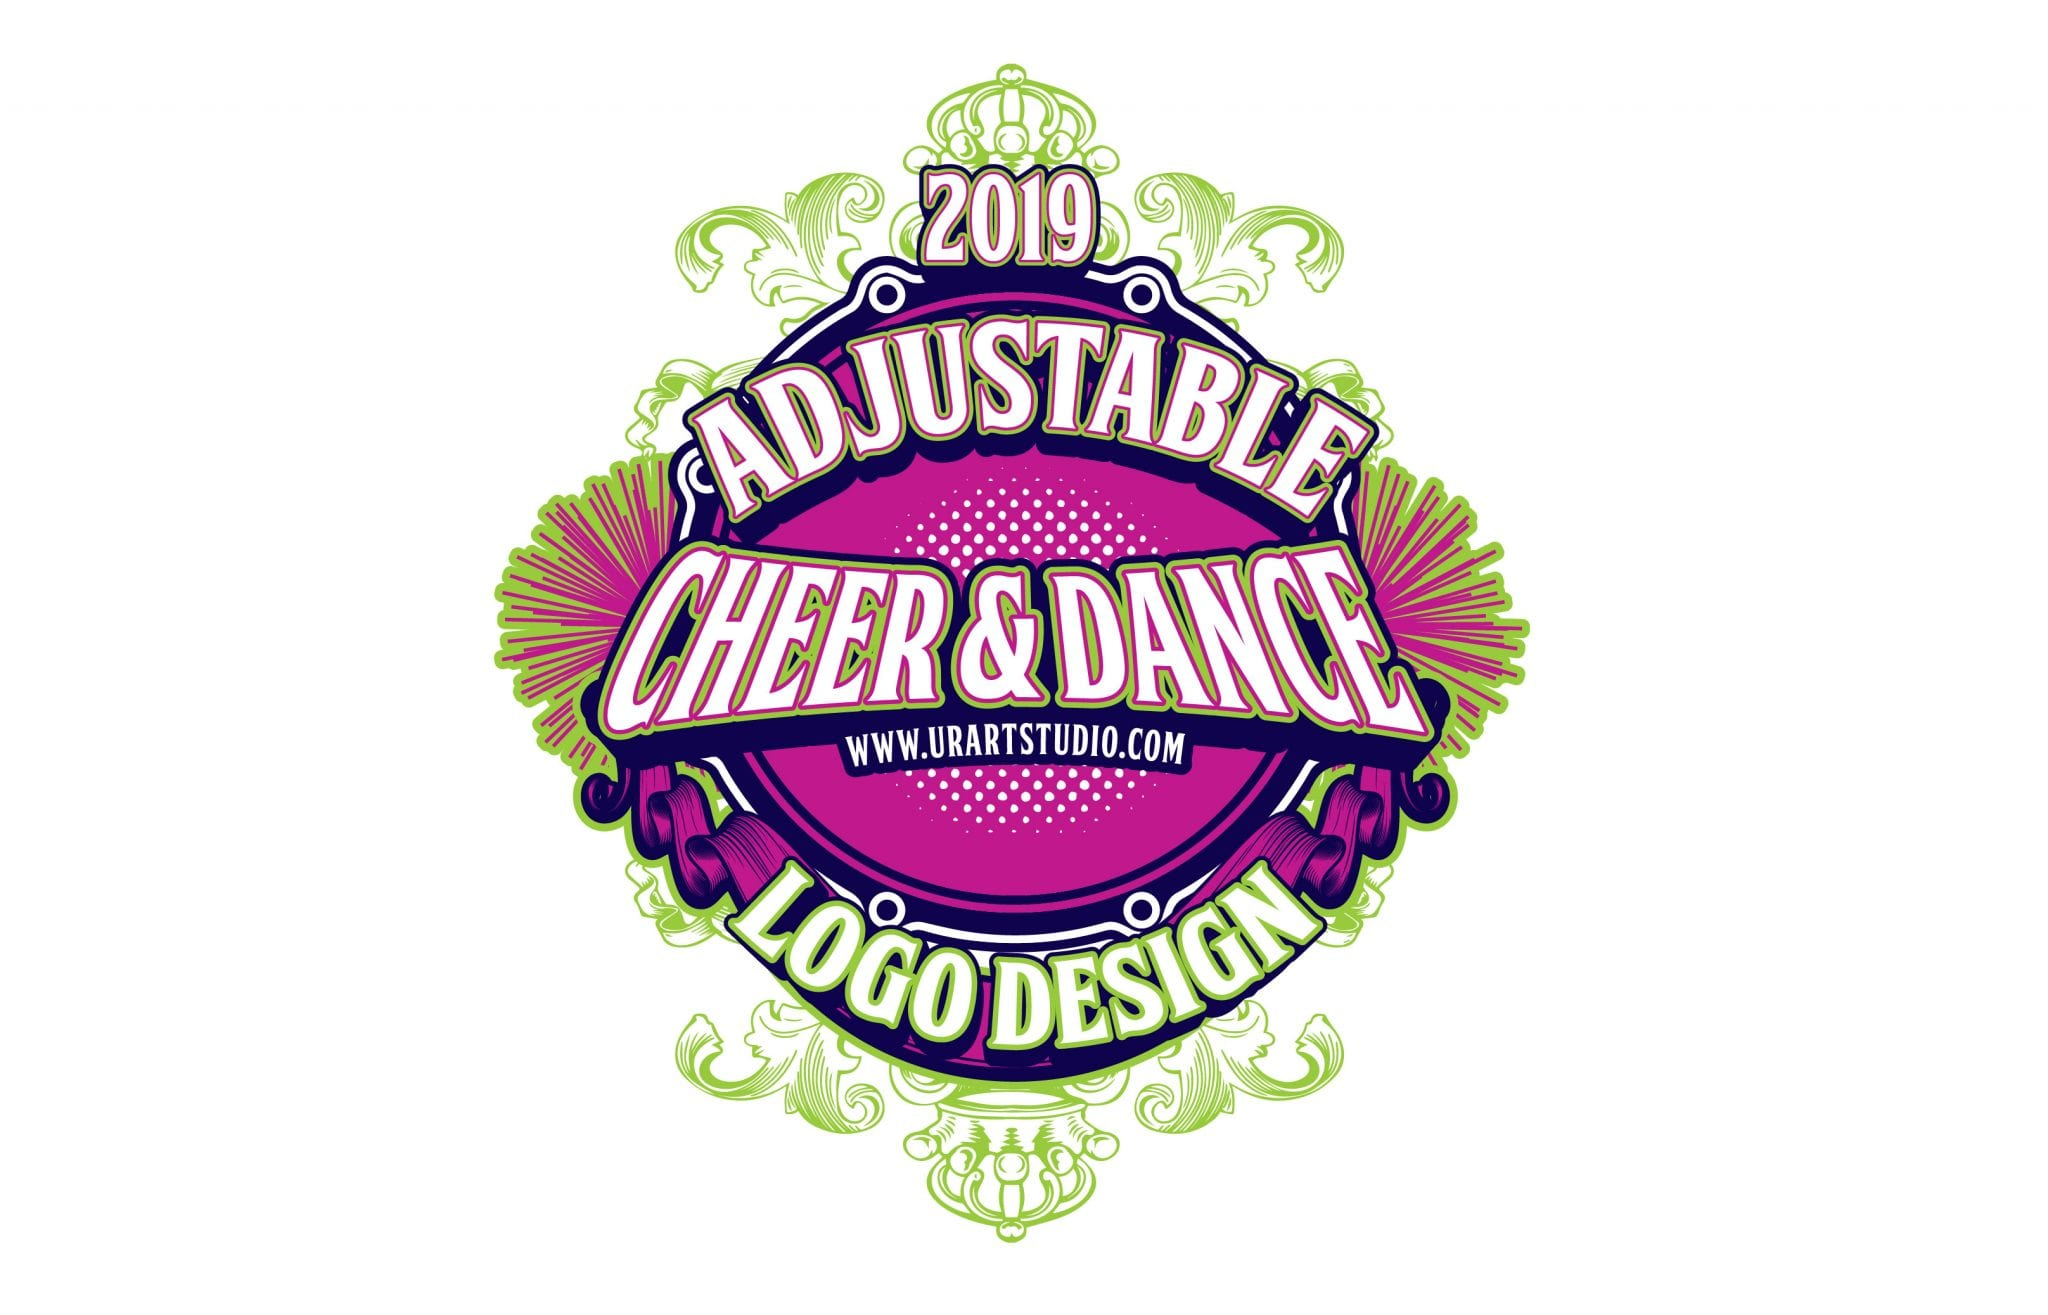 Cheer and dance adjustable vector logo design for print ai eps pdf psd 505 urartstudio logos paintings art lessons